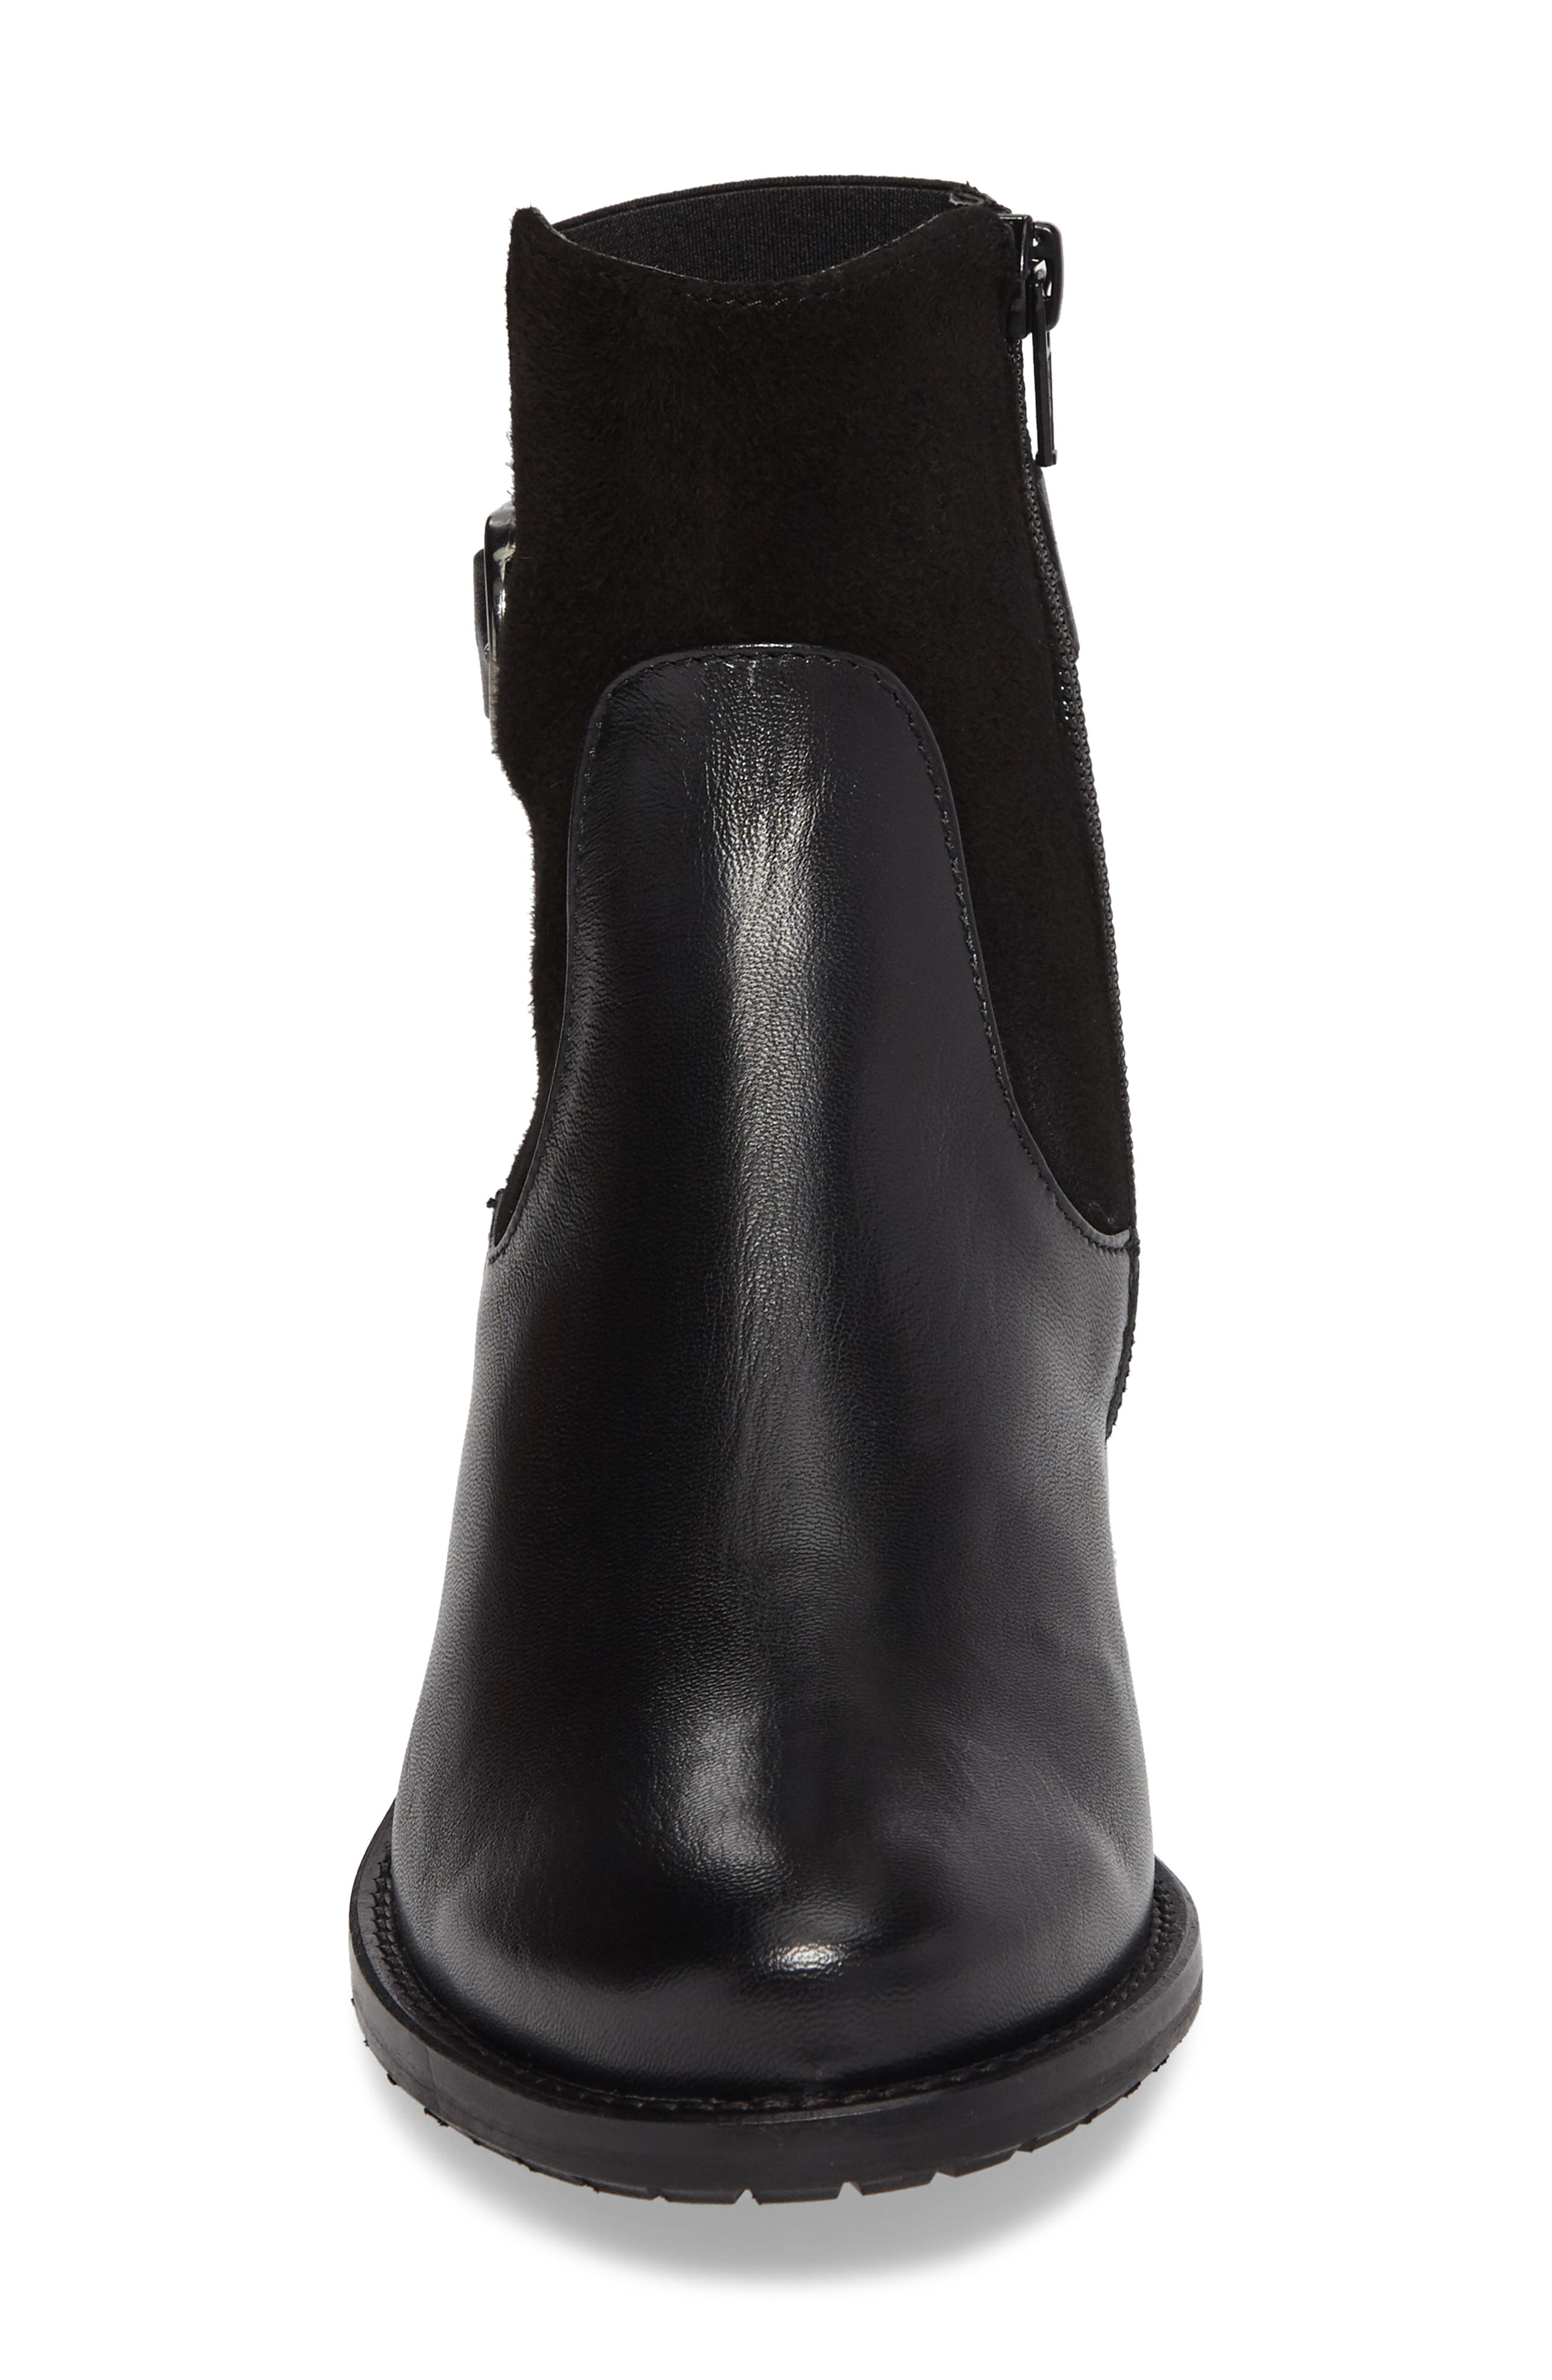 Samira Bootie,                             Alternate thumbnail 4, color,                             Black Leather